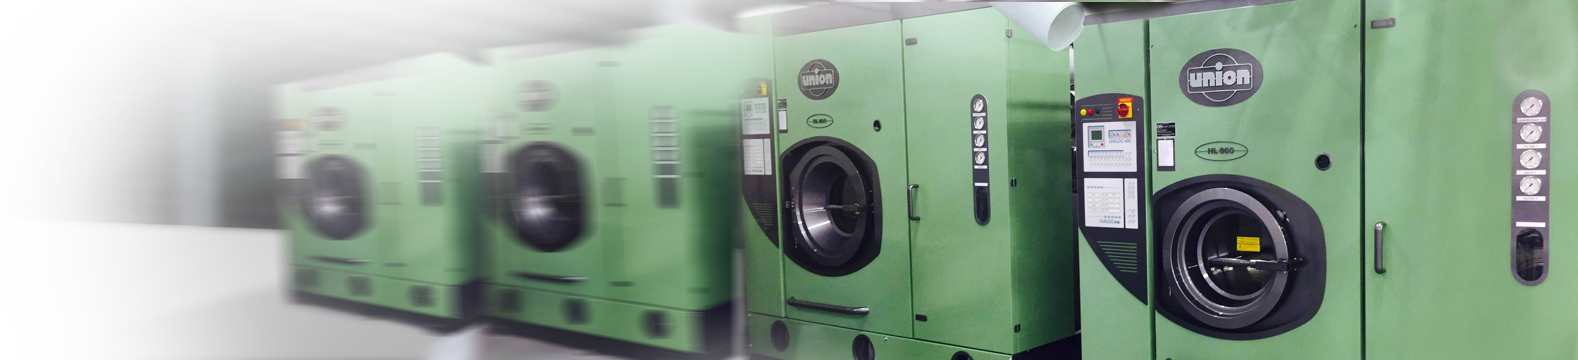 green dry cleaning machines